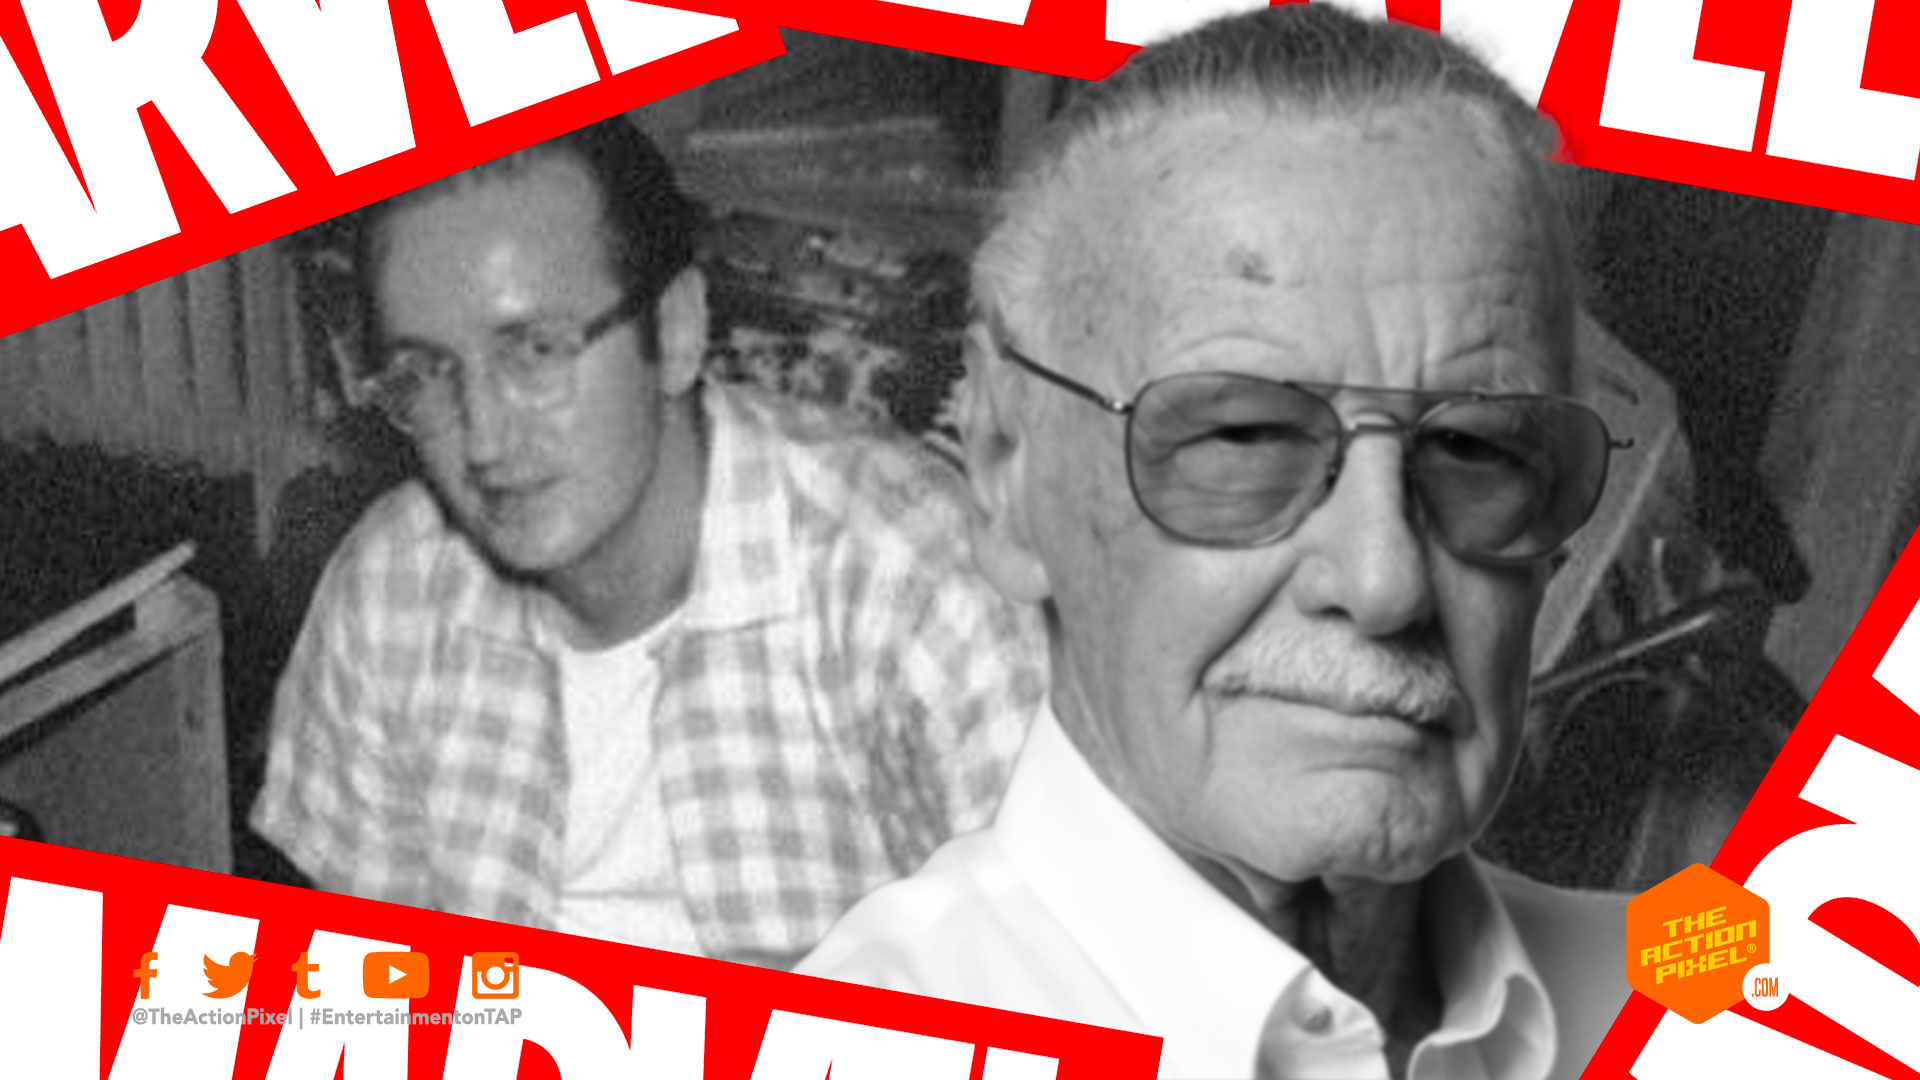 steve ditko, marvel, disney, stan lee, sue, comic books, the avengers, avengers, spider-man, entertainment on tap, featured, the action pixel,